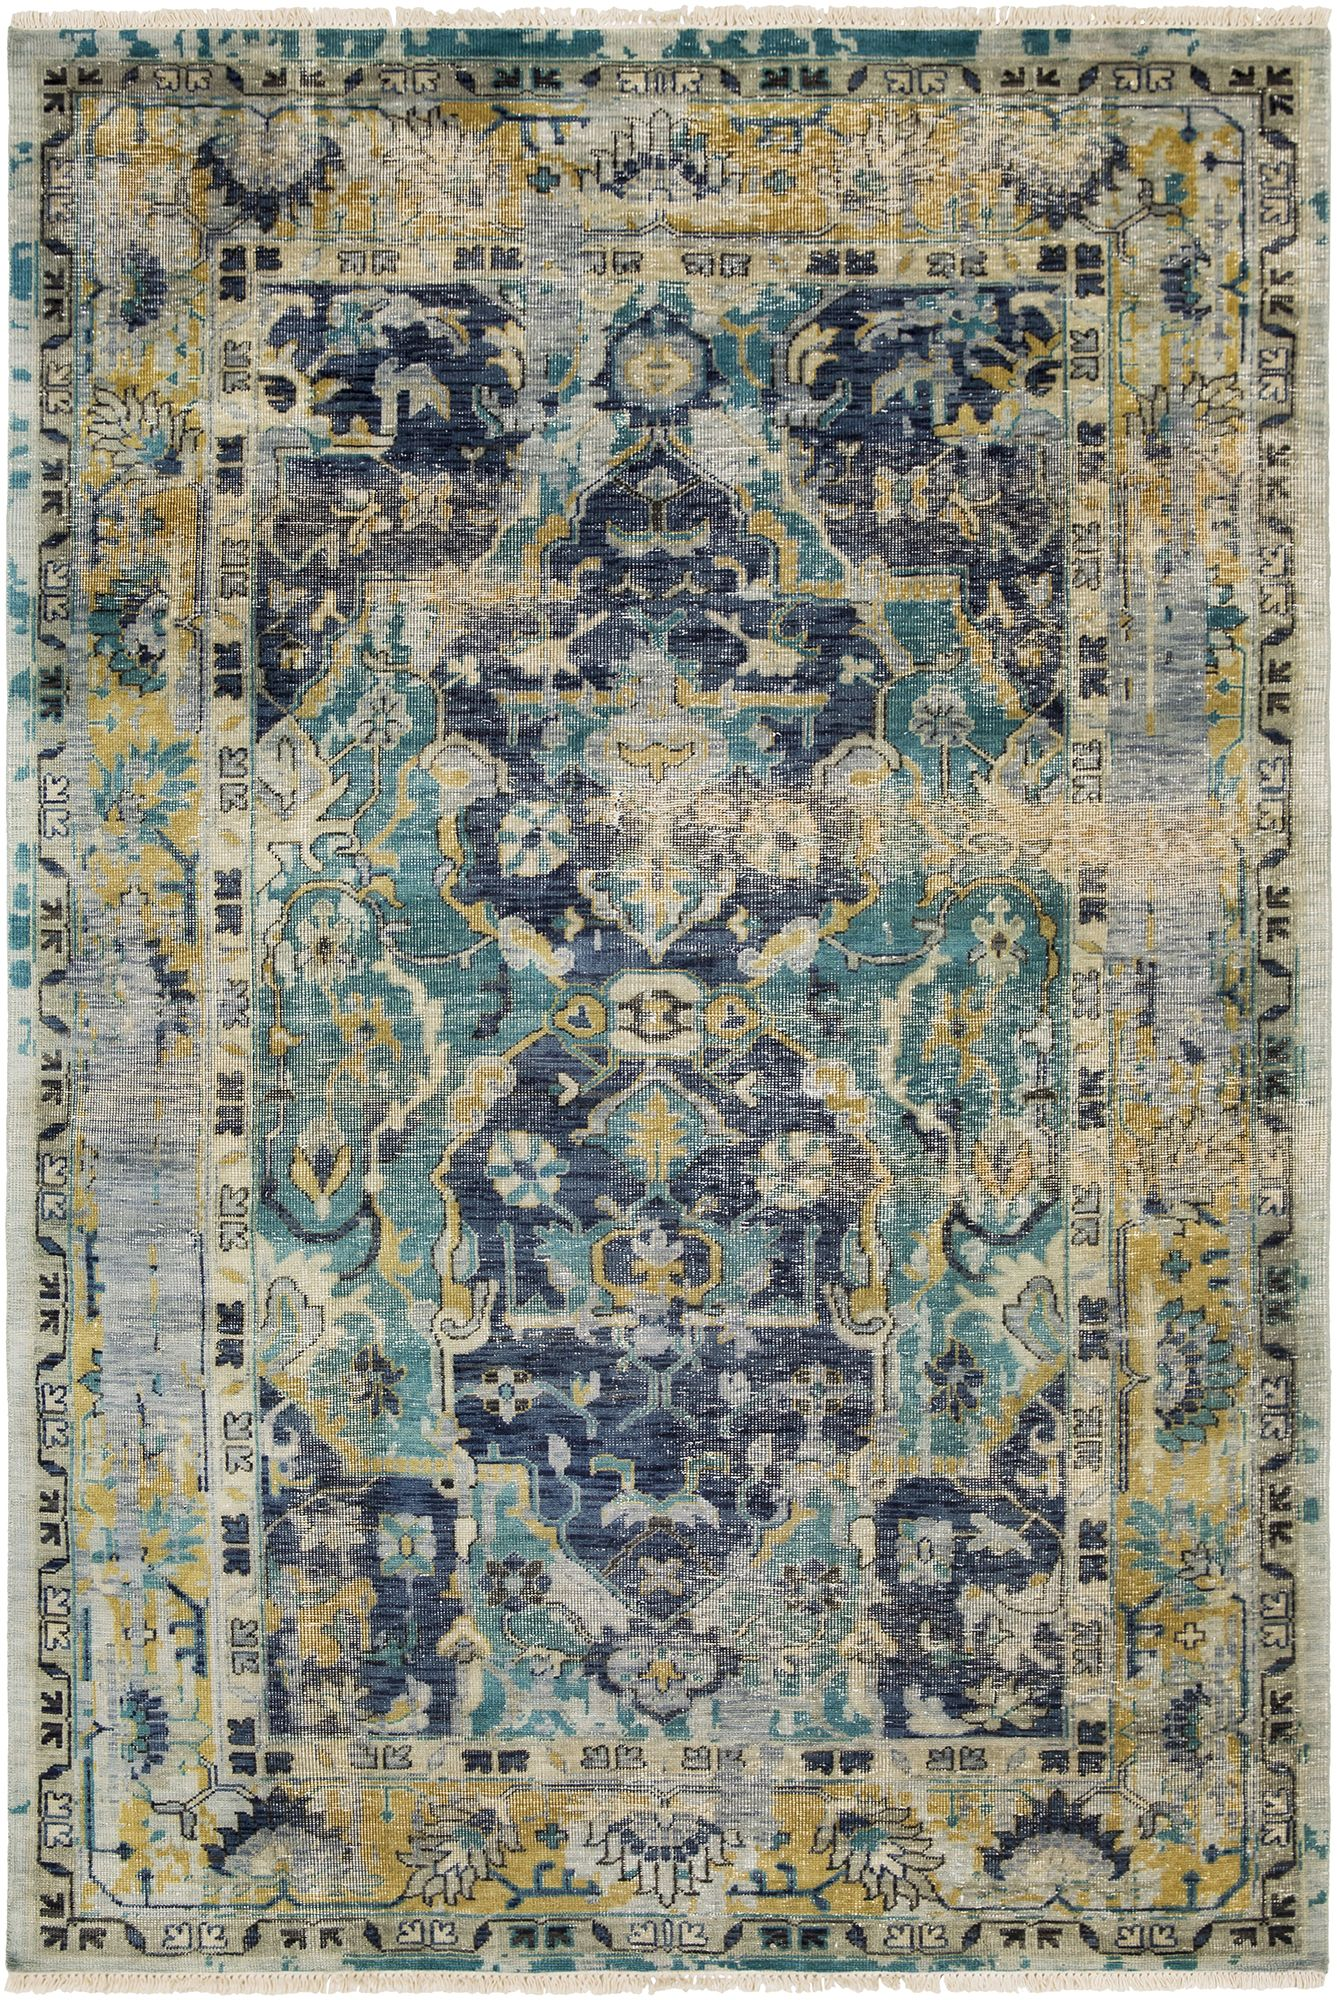 Festival Hand Knotted Wool Area Rug From Suryasocial